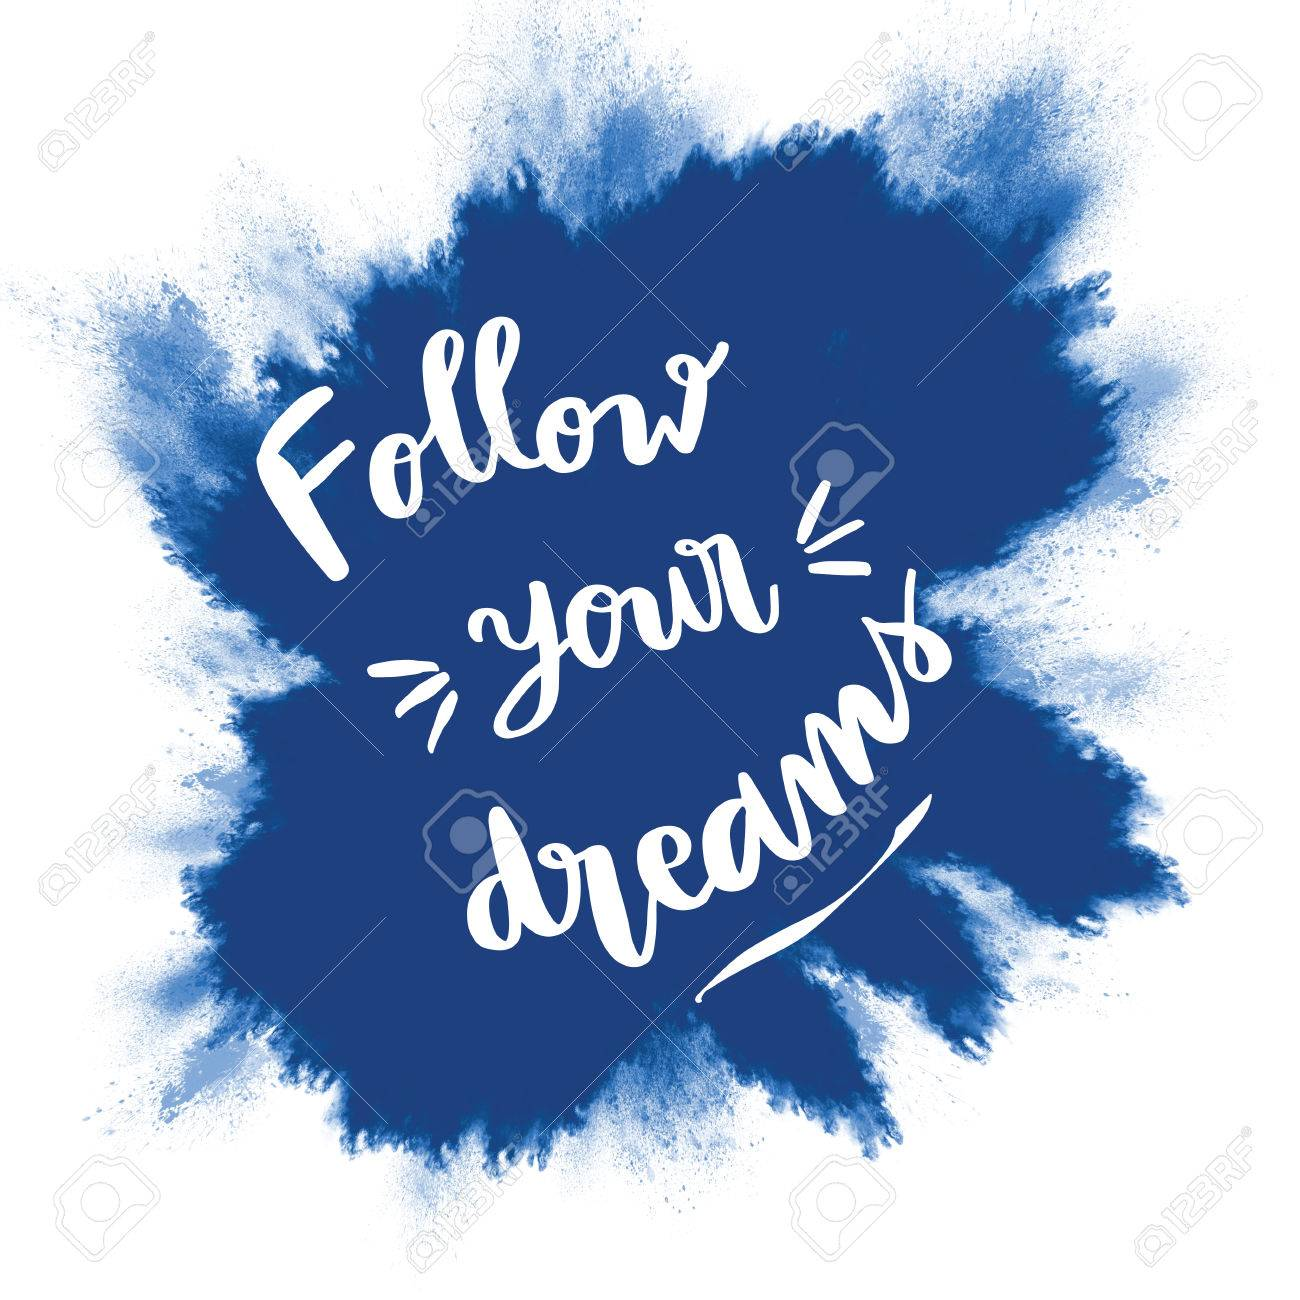 Follow Your Dreams Inspirational Message On Blue Splash Background Stock Photo